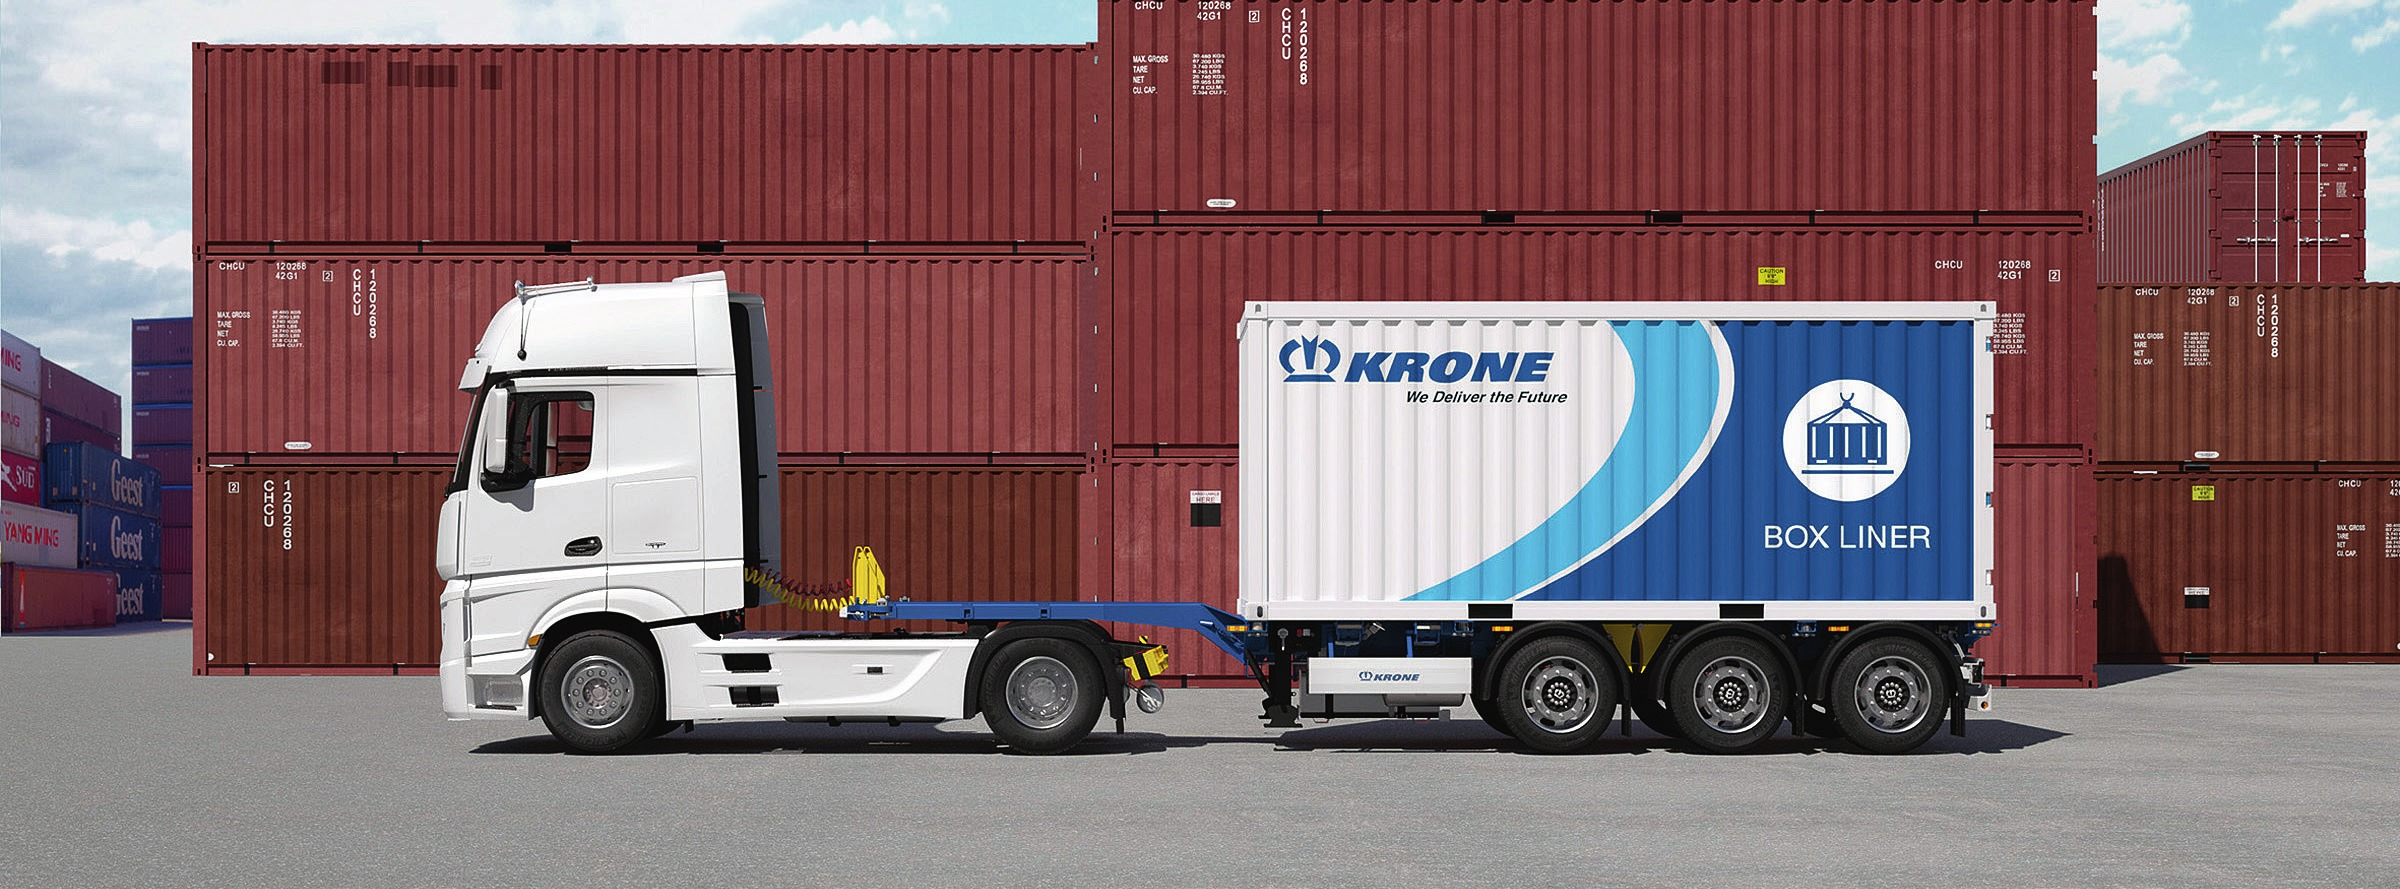 Simple is better: growth for the box liner family at Krone Image 1